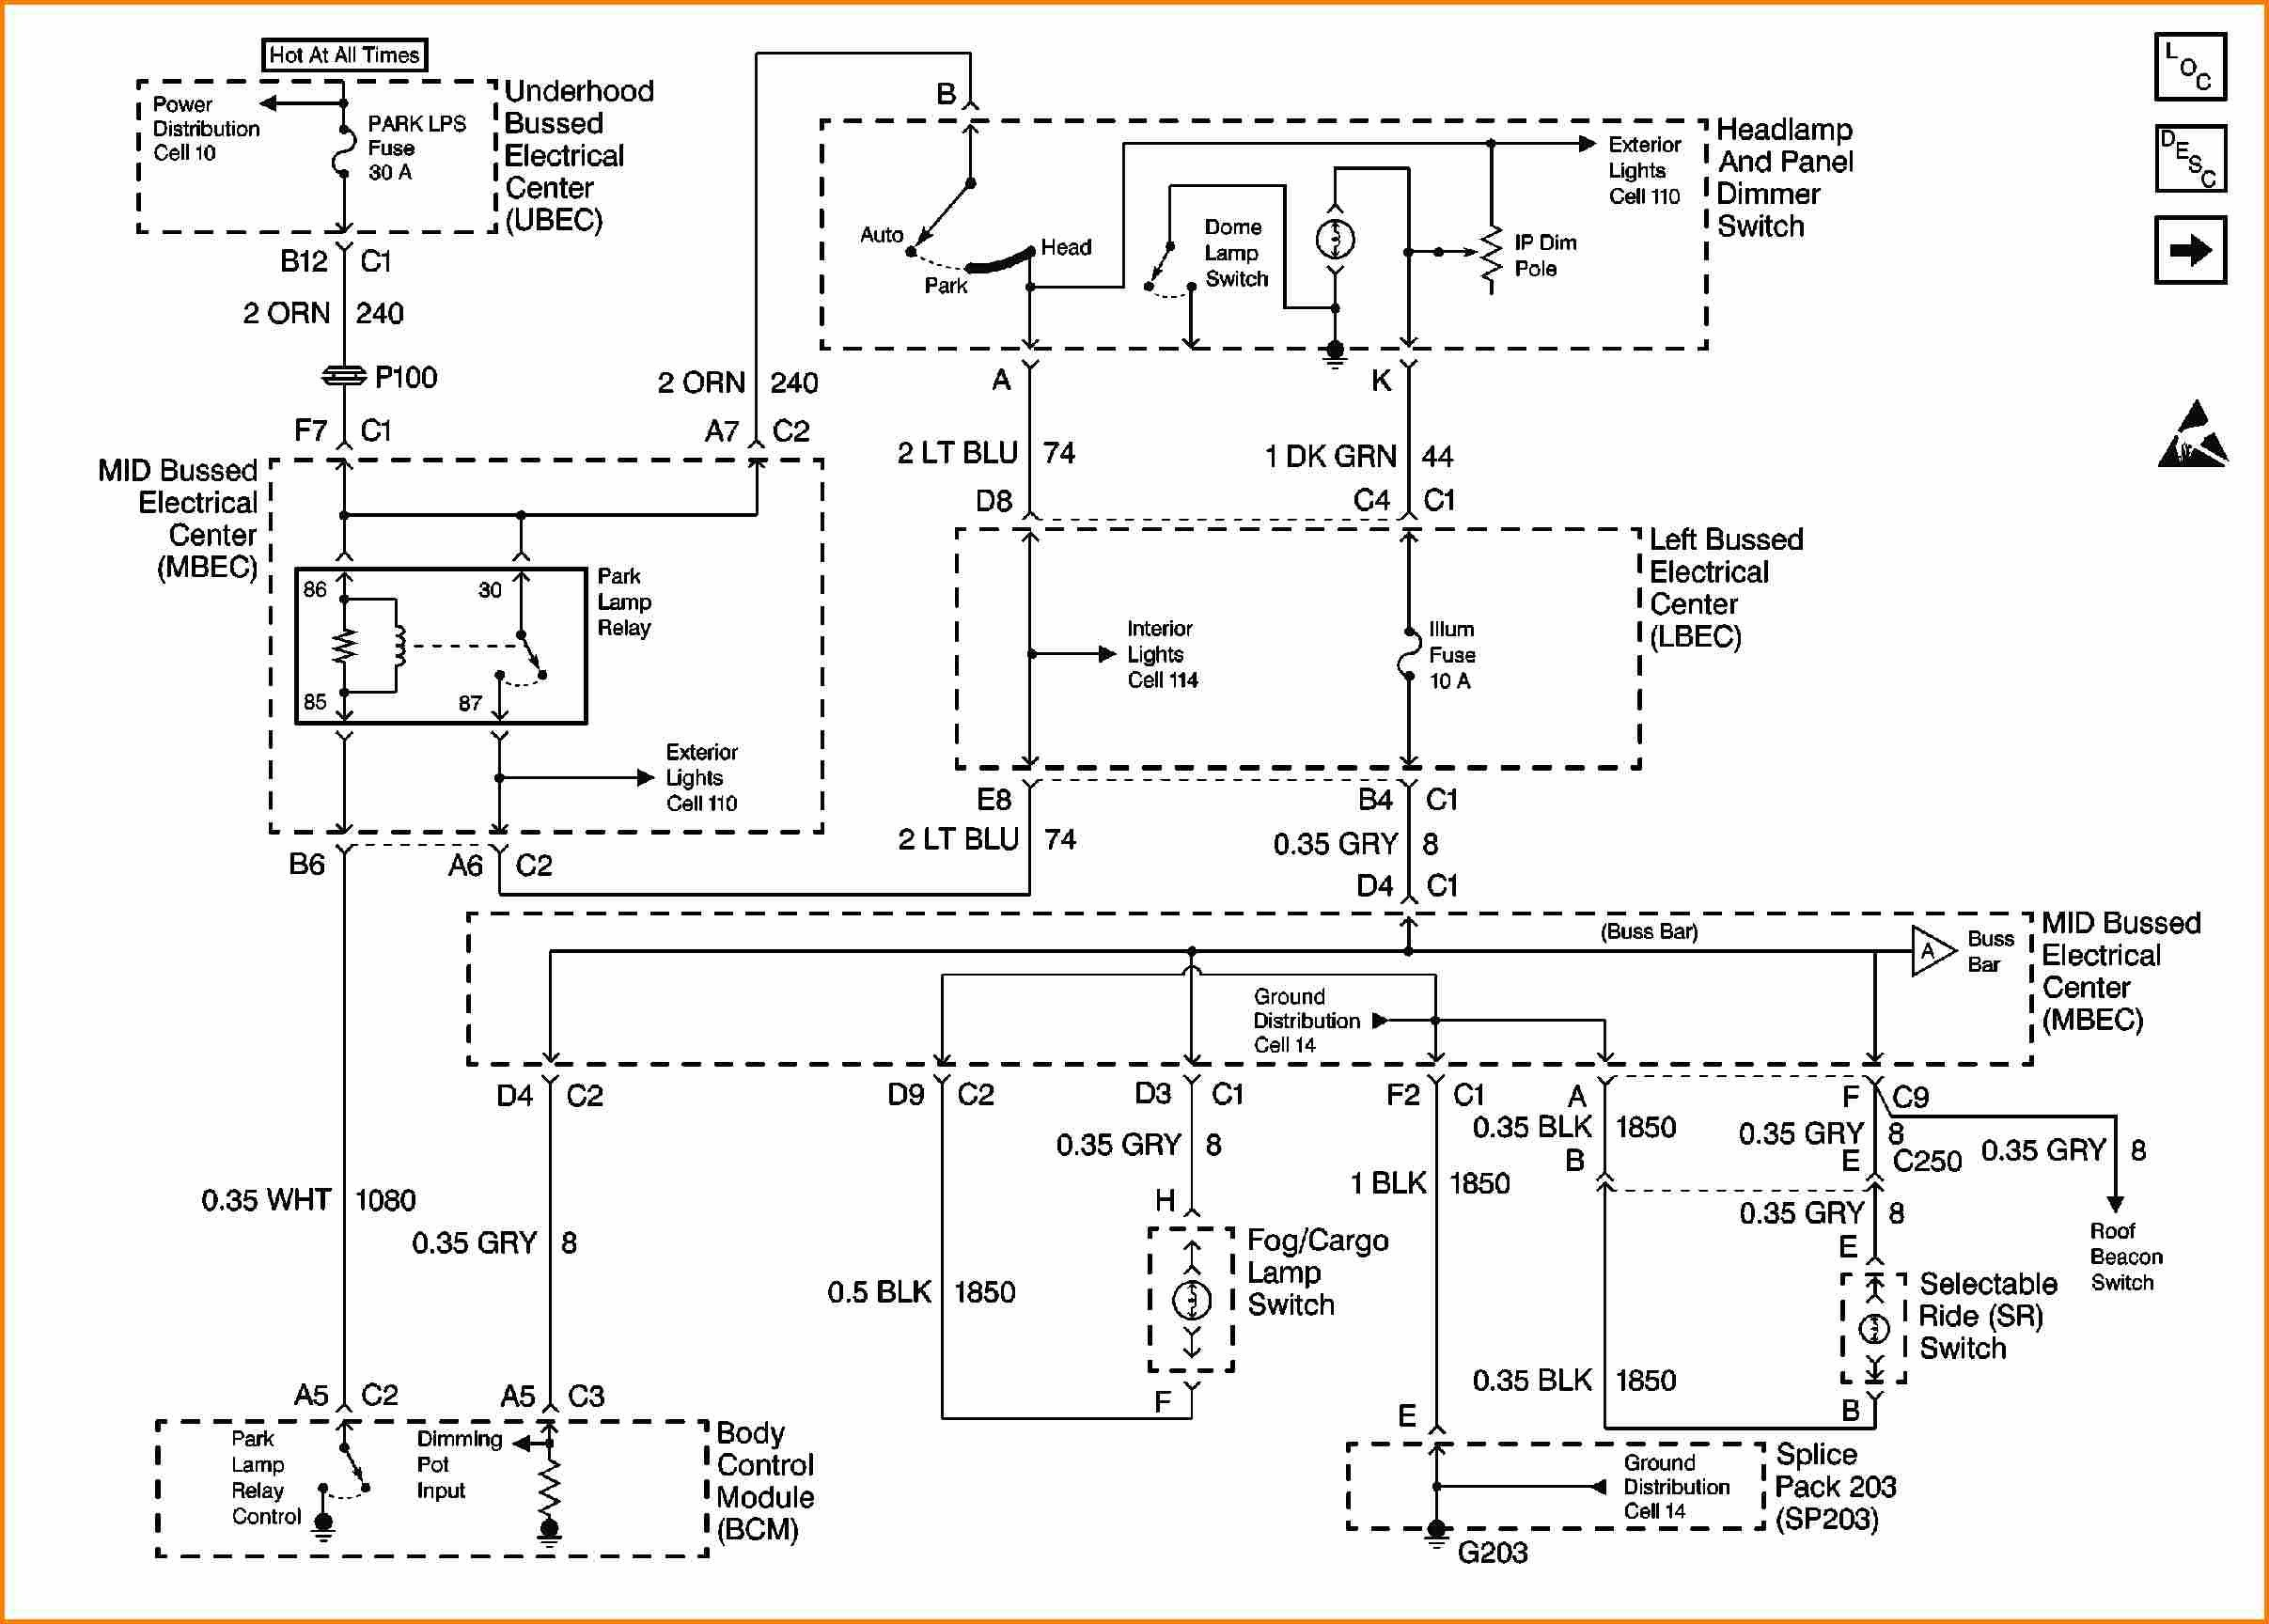 Chevy Cavalier Wiring Diagram - Center Wiring Diagram add-external -  add-external.iosonointersex.itiosonointersex.it